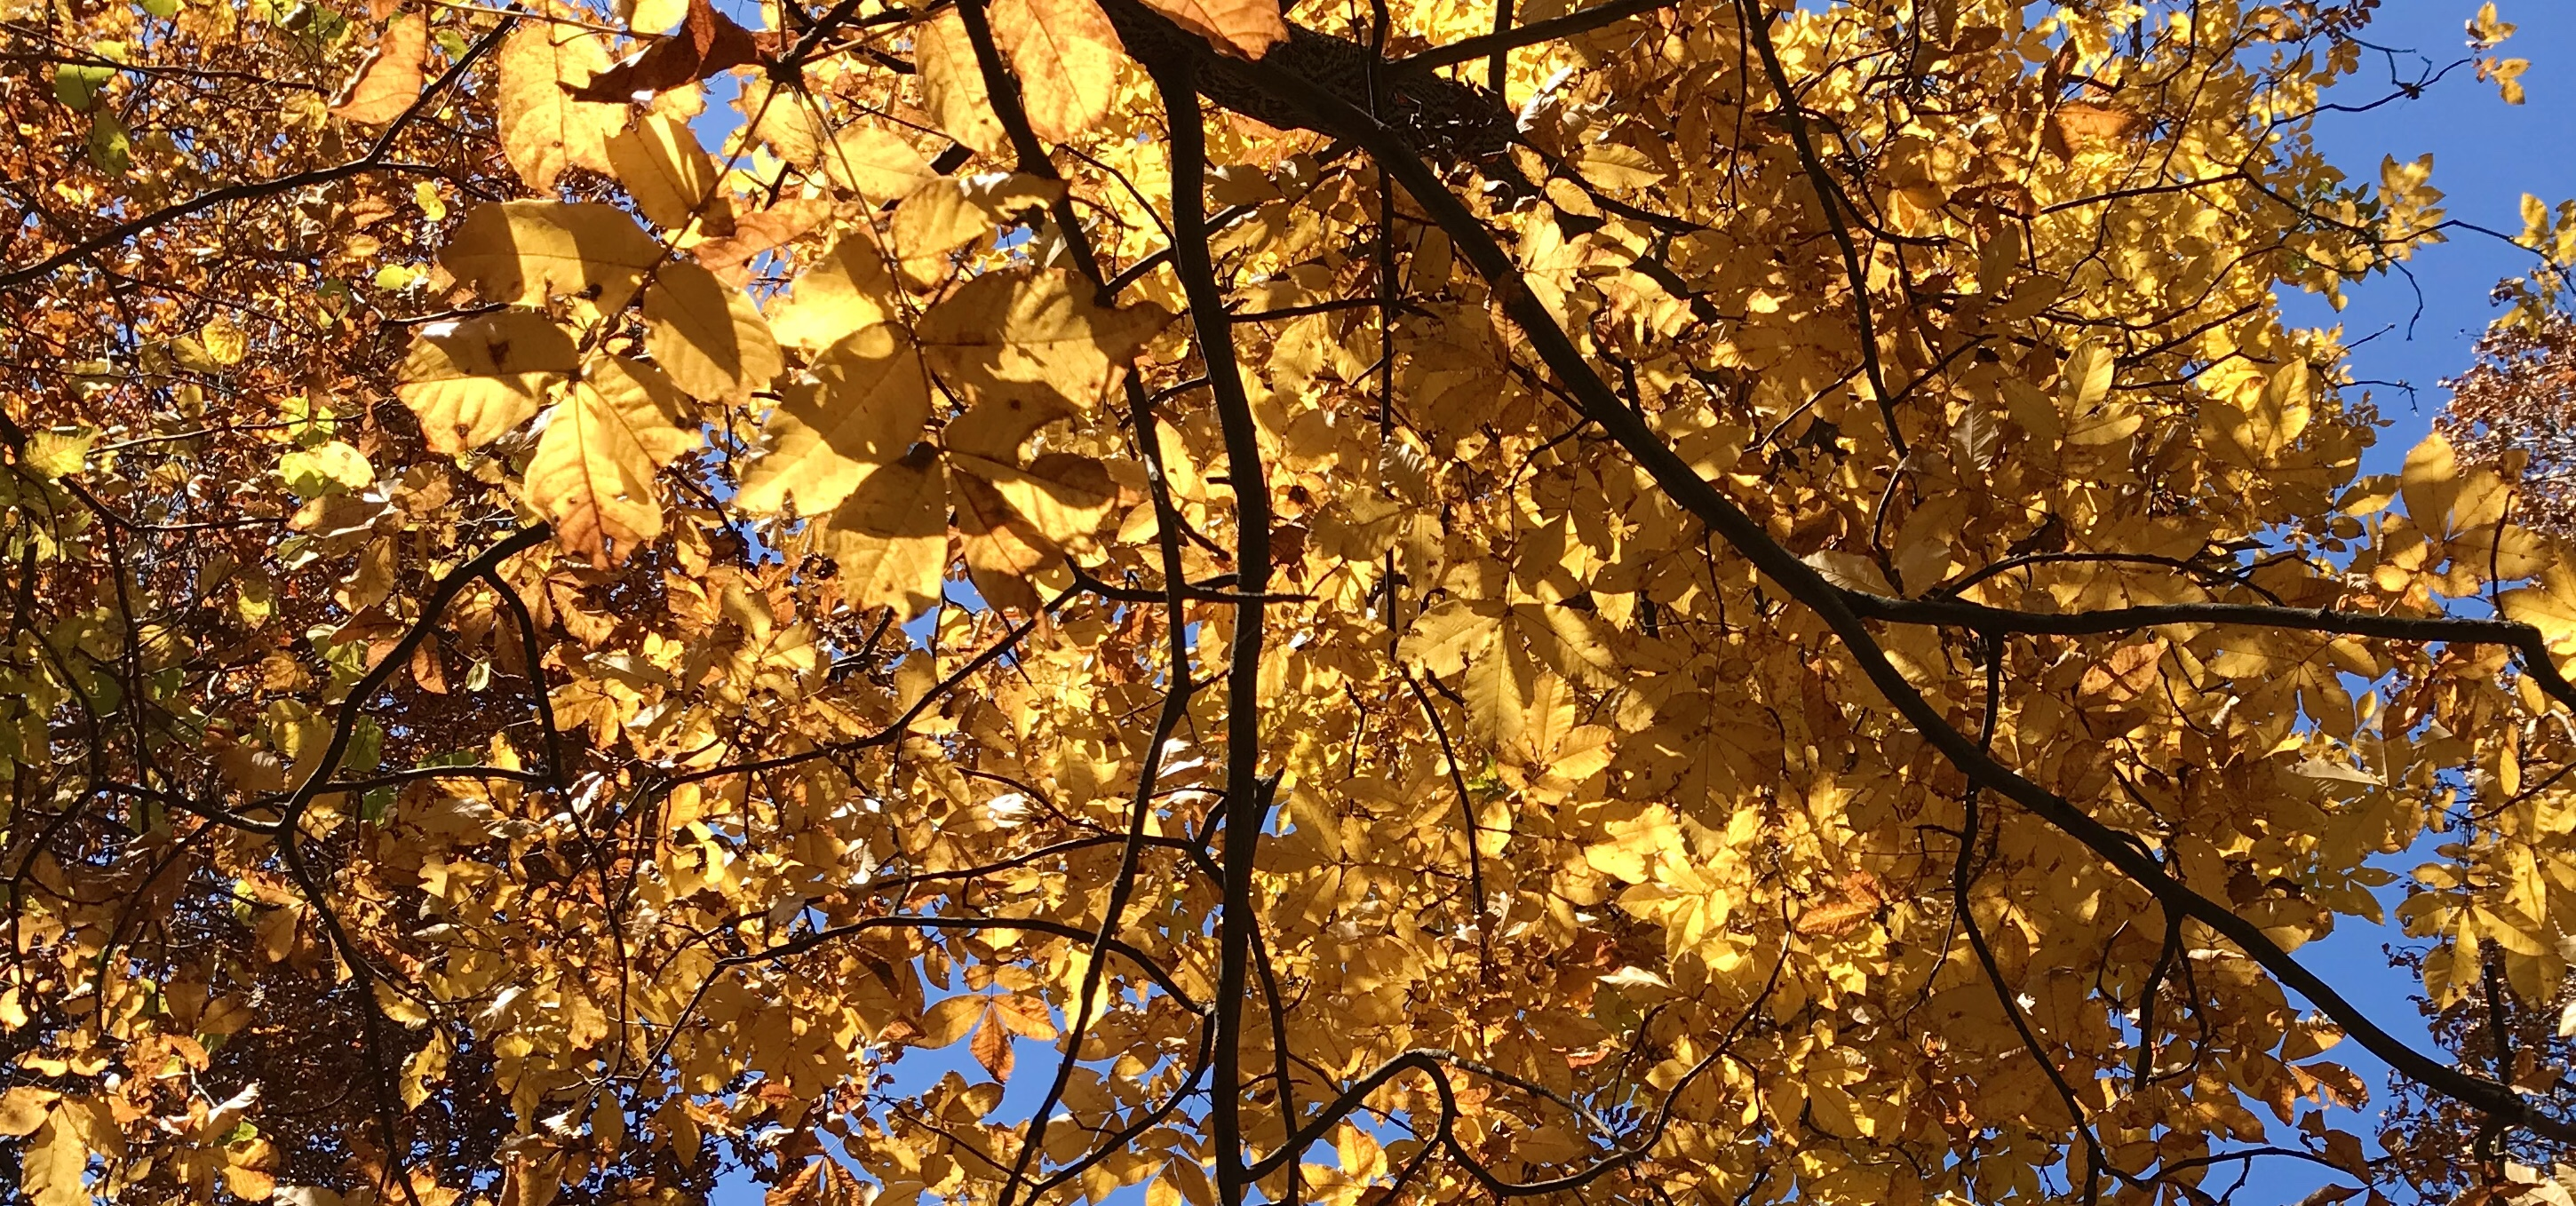 A golden canopy of Hickory leaves photographed by MJ Seal in the Shenandoah Valley of Virginia